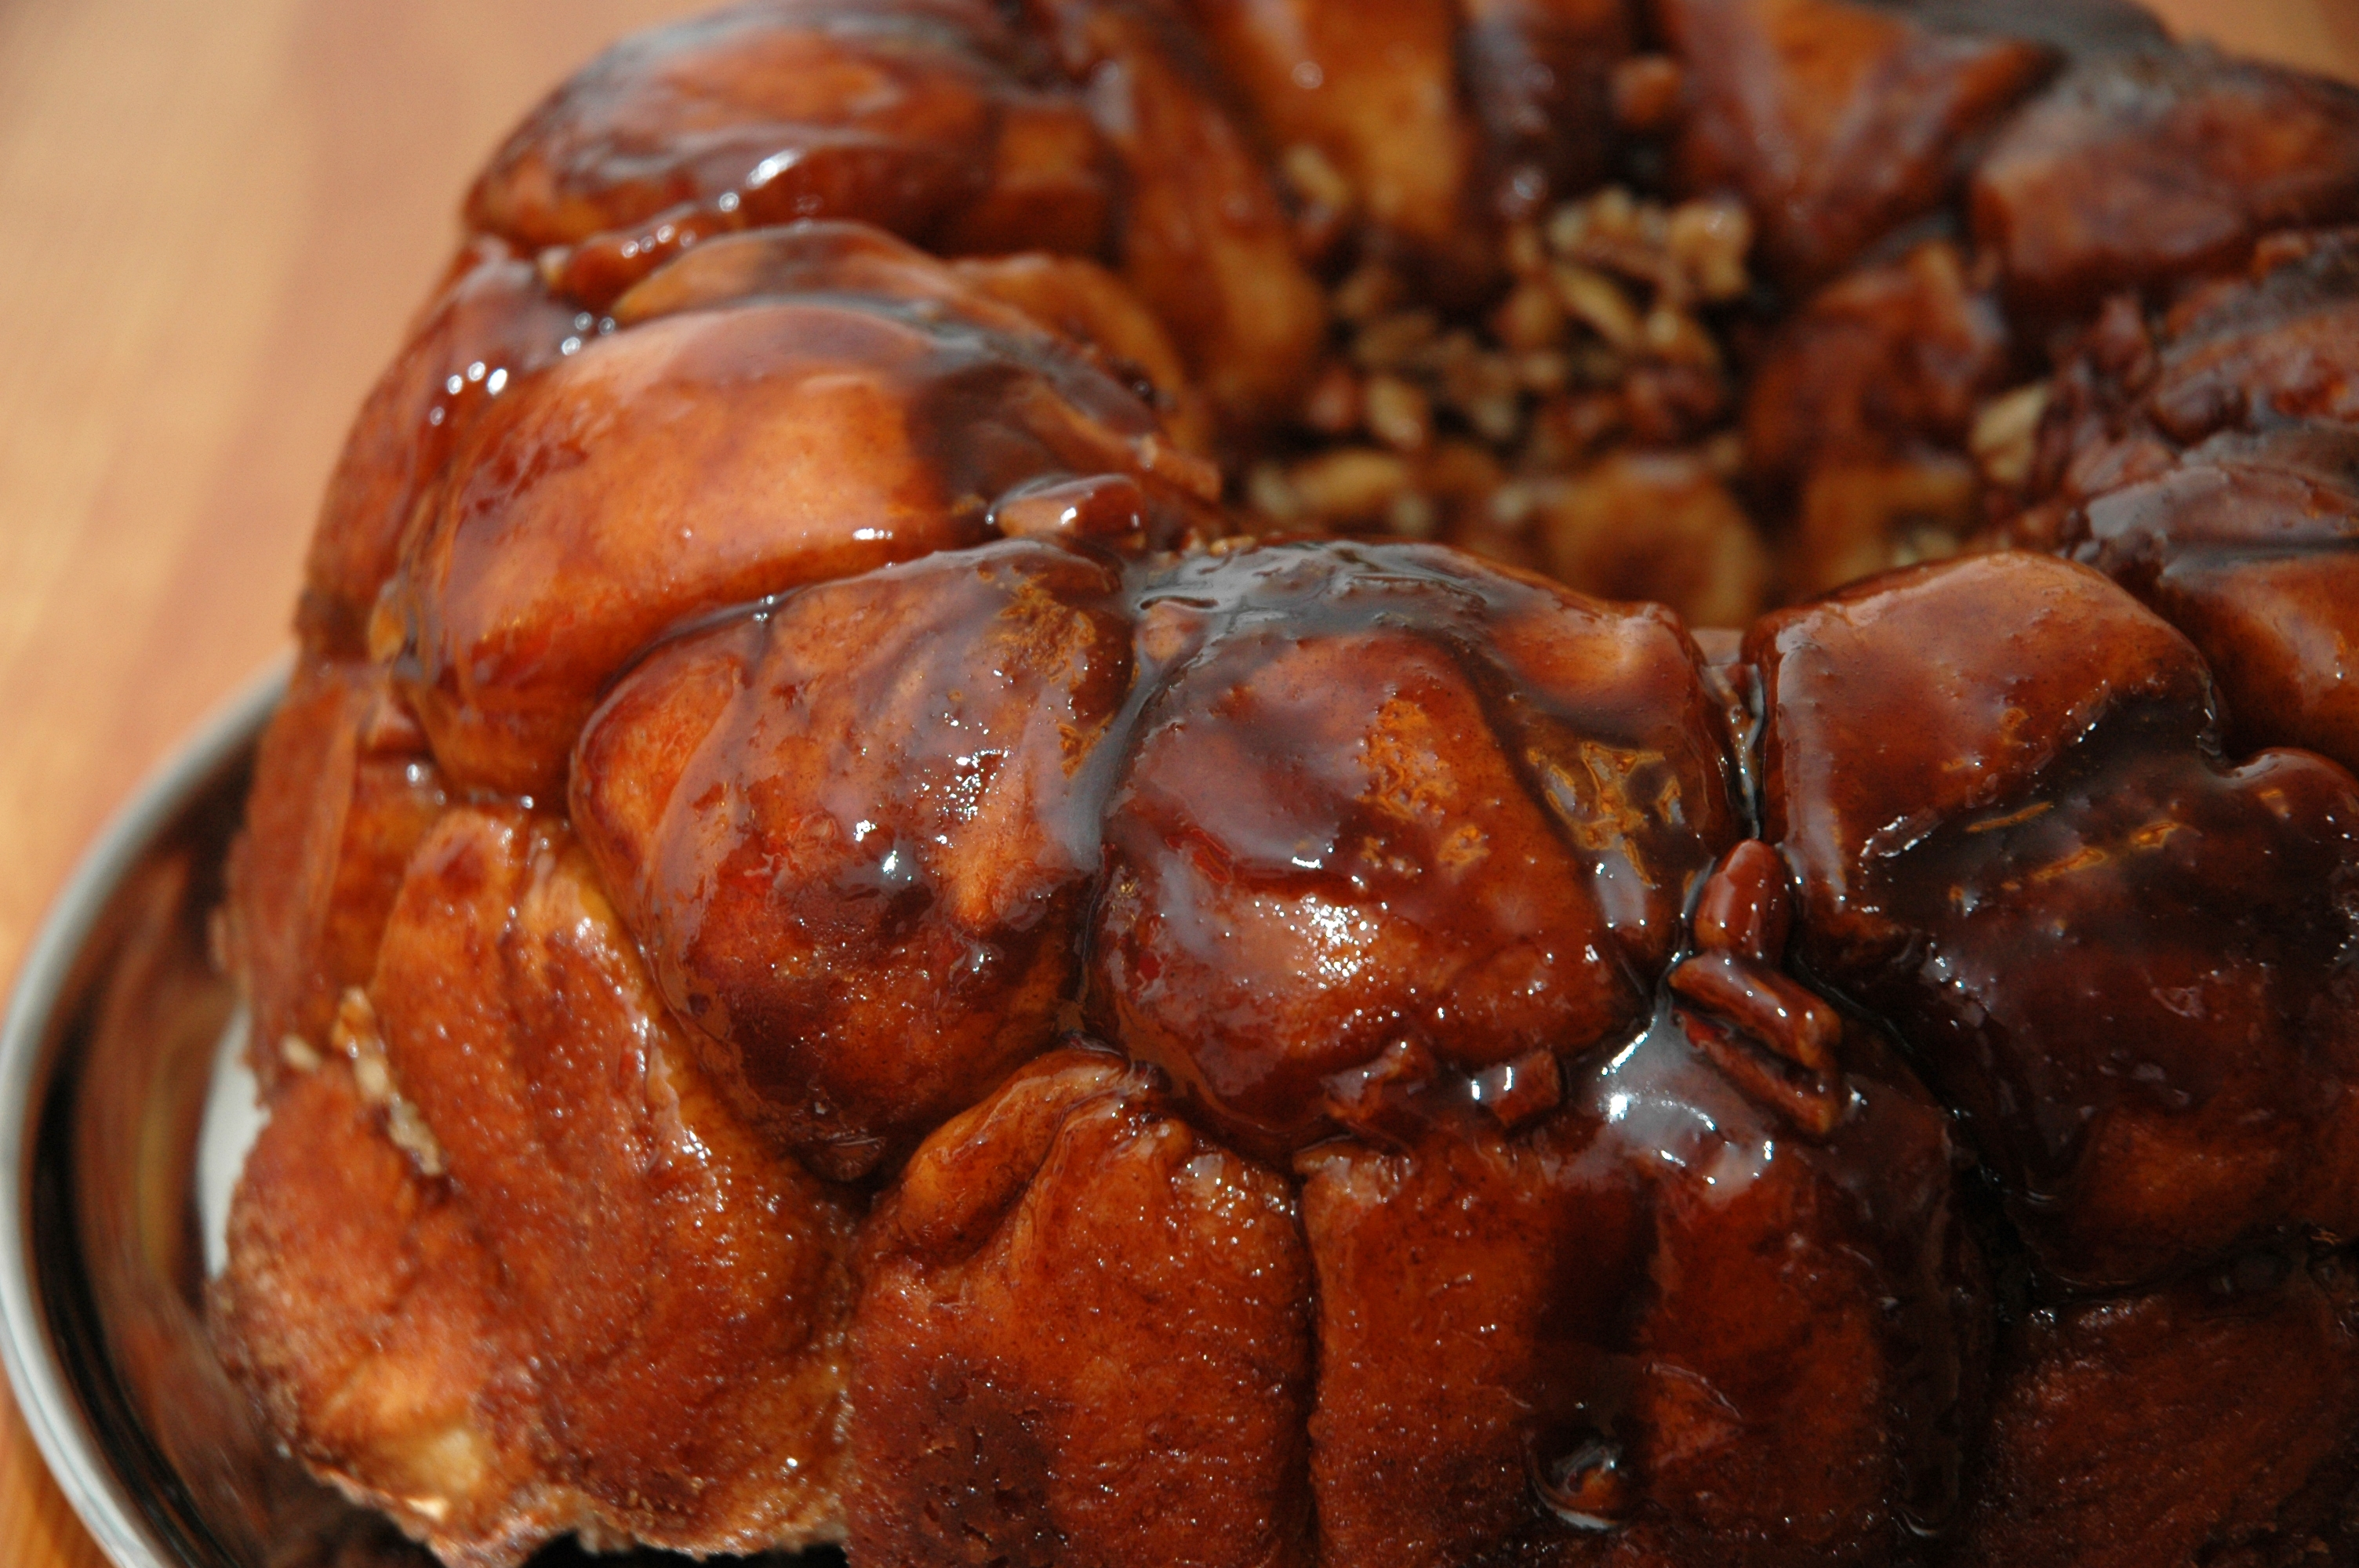 pictures of monkey bread - group picture, image by tag ...